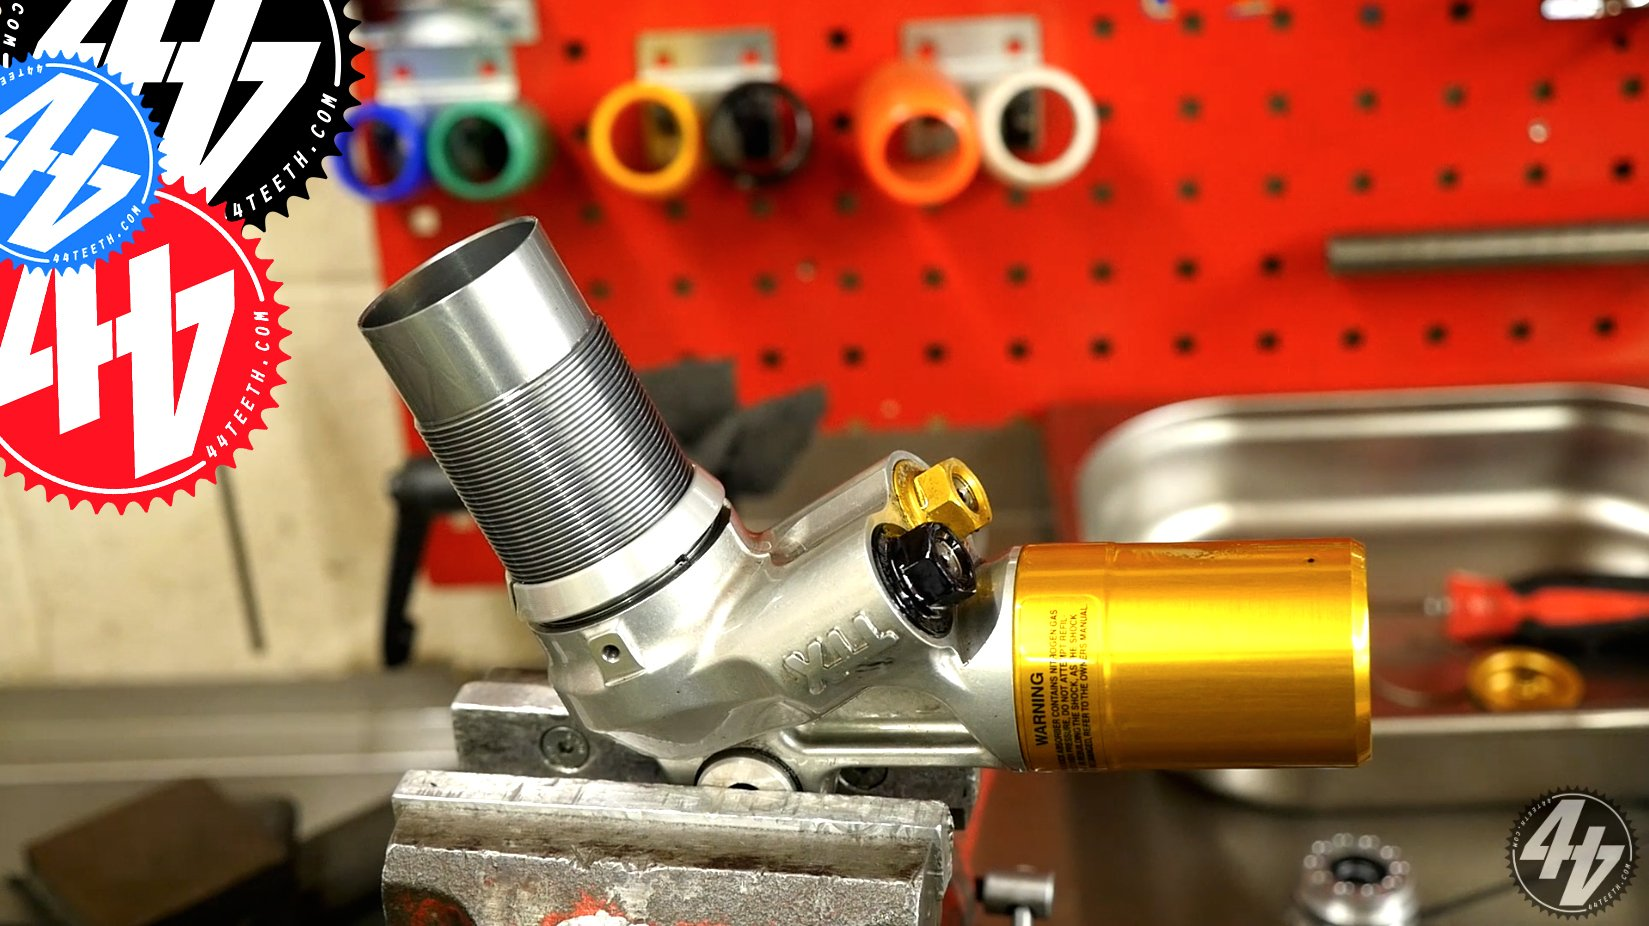 Video: What's inside an Öhlins Shock?